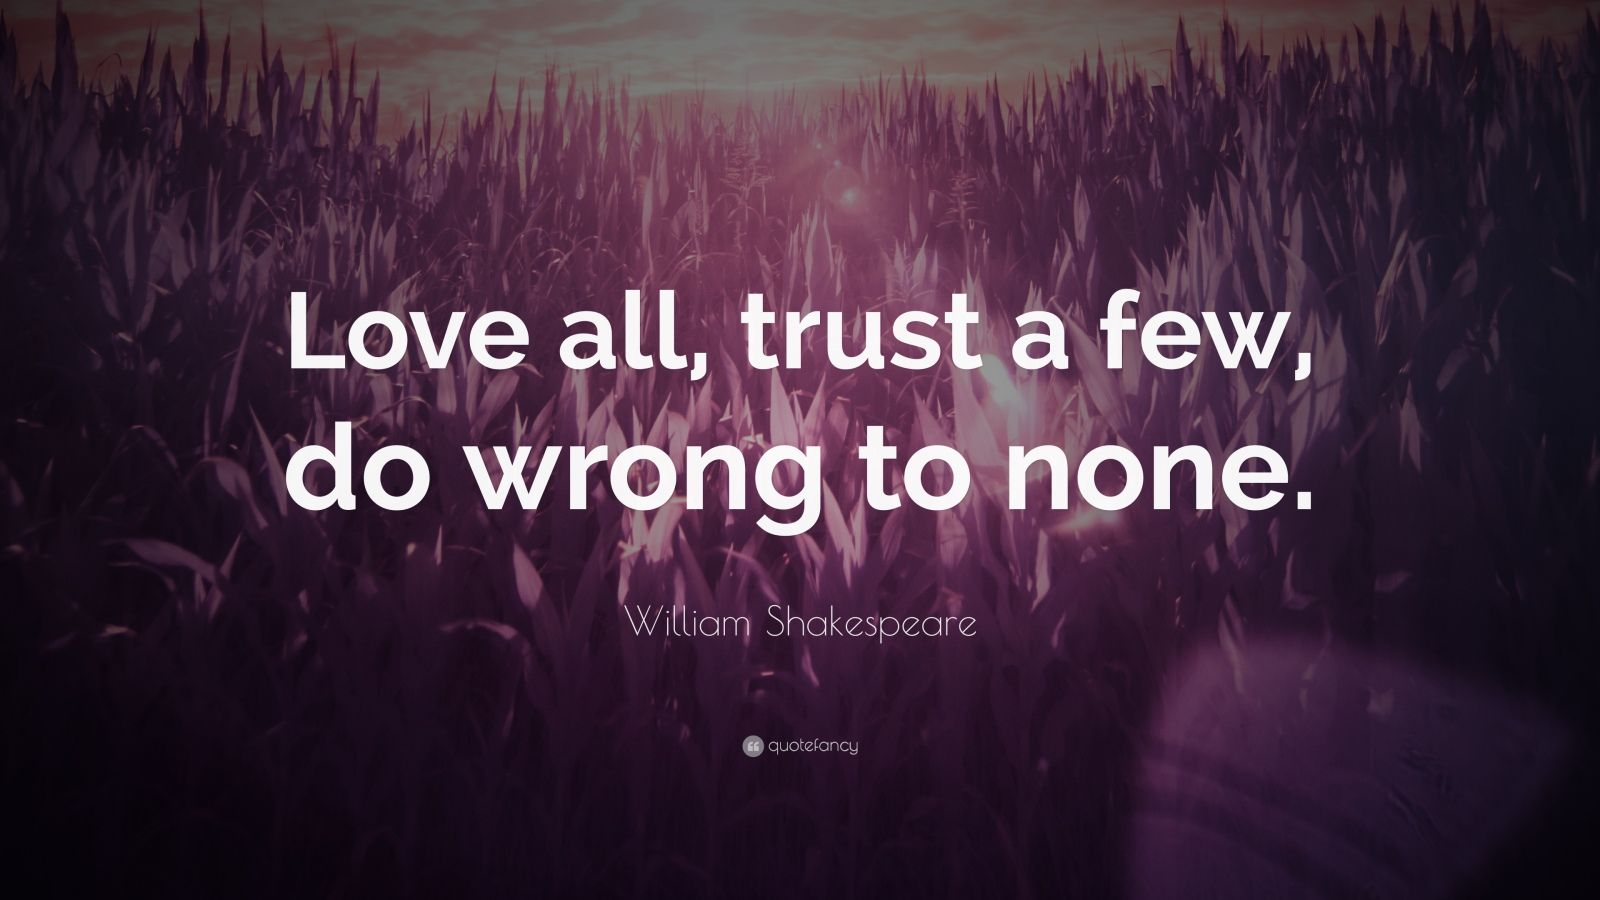 5722-William-Shakespeare-Quote-Love-all-trust-a-few-do-wrong-to-none